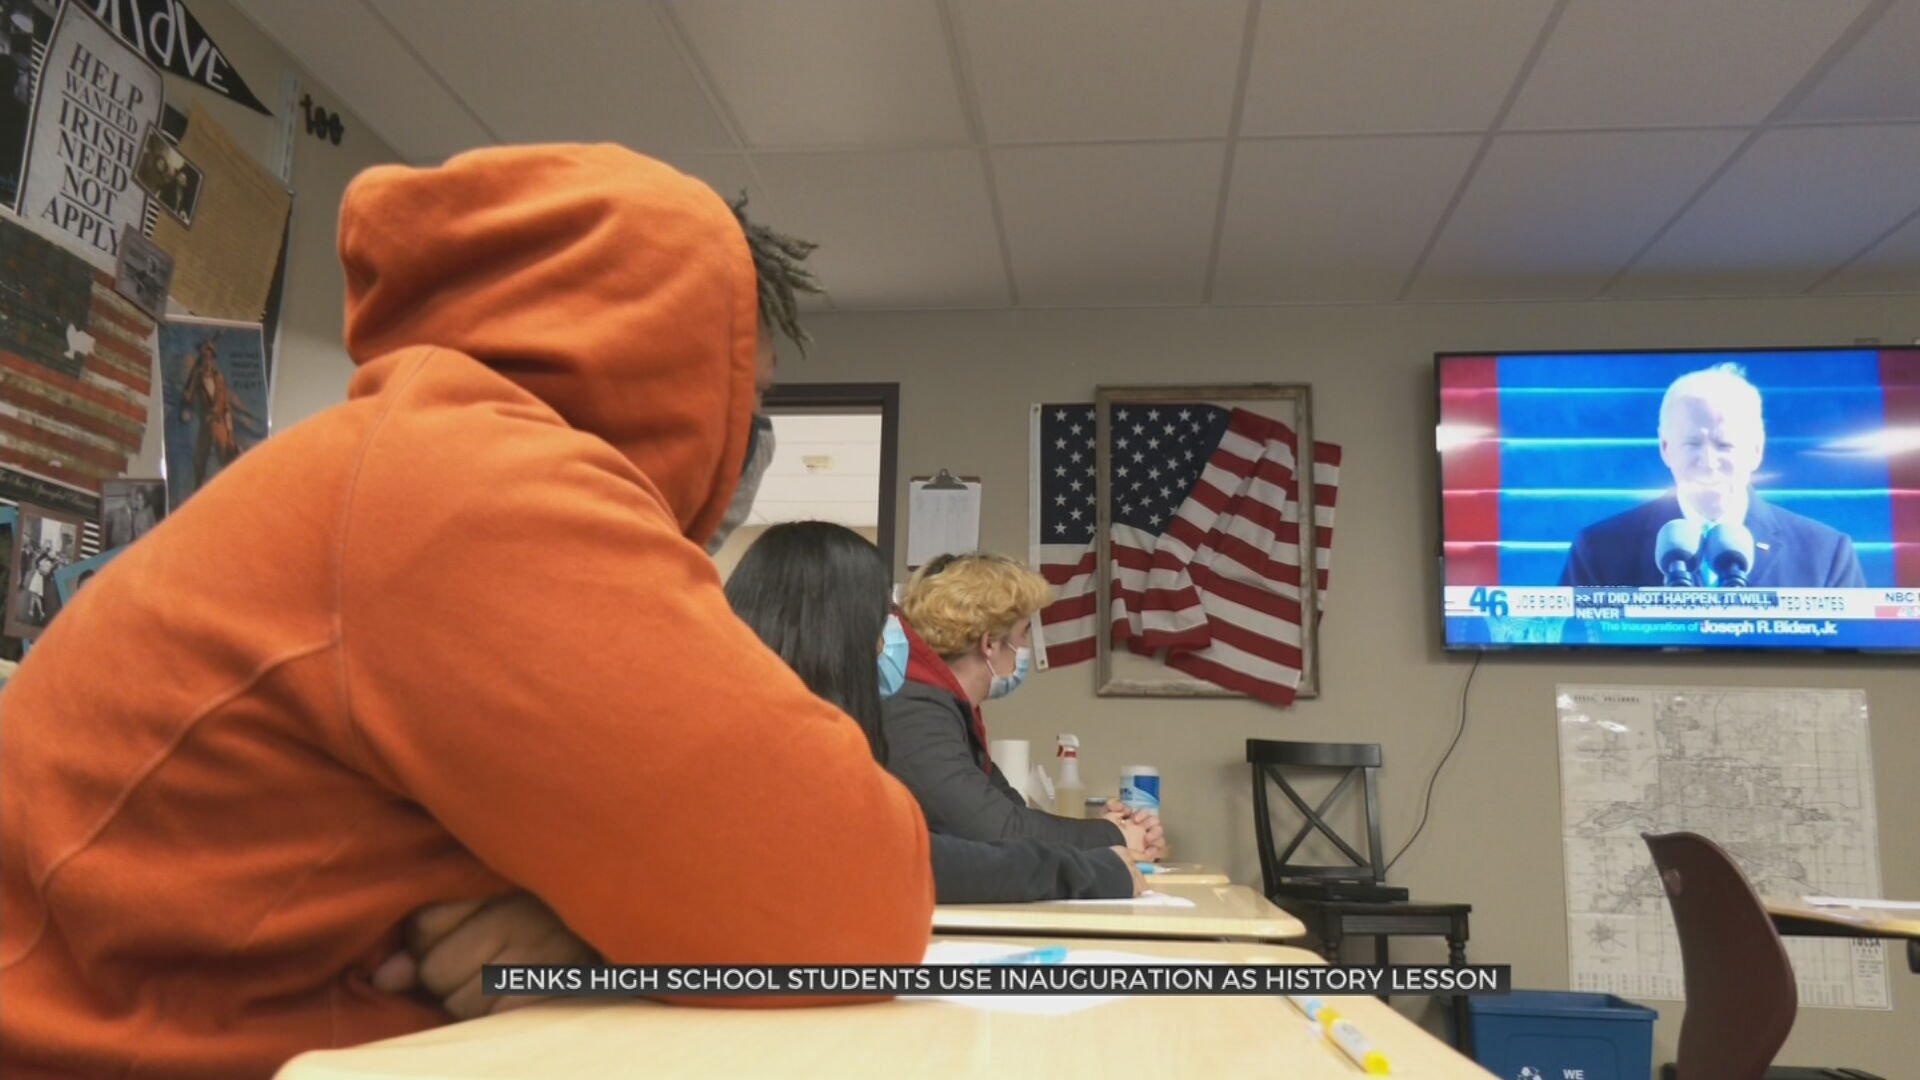 Jenks High School Students Had Eyes On History Using Inauguration As Lesson